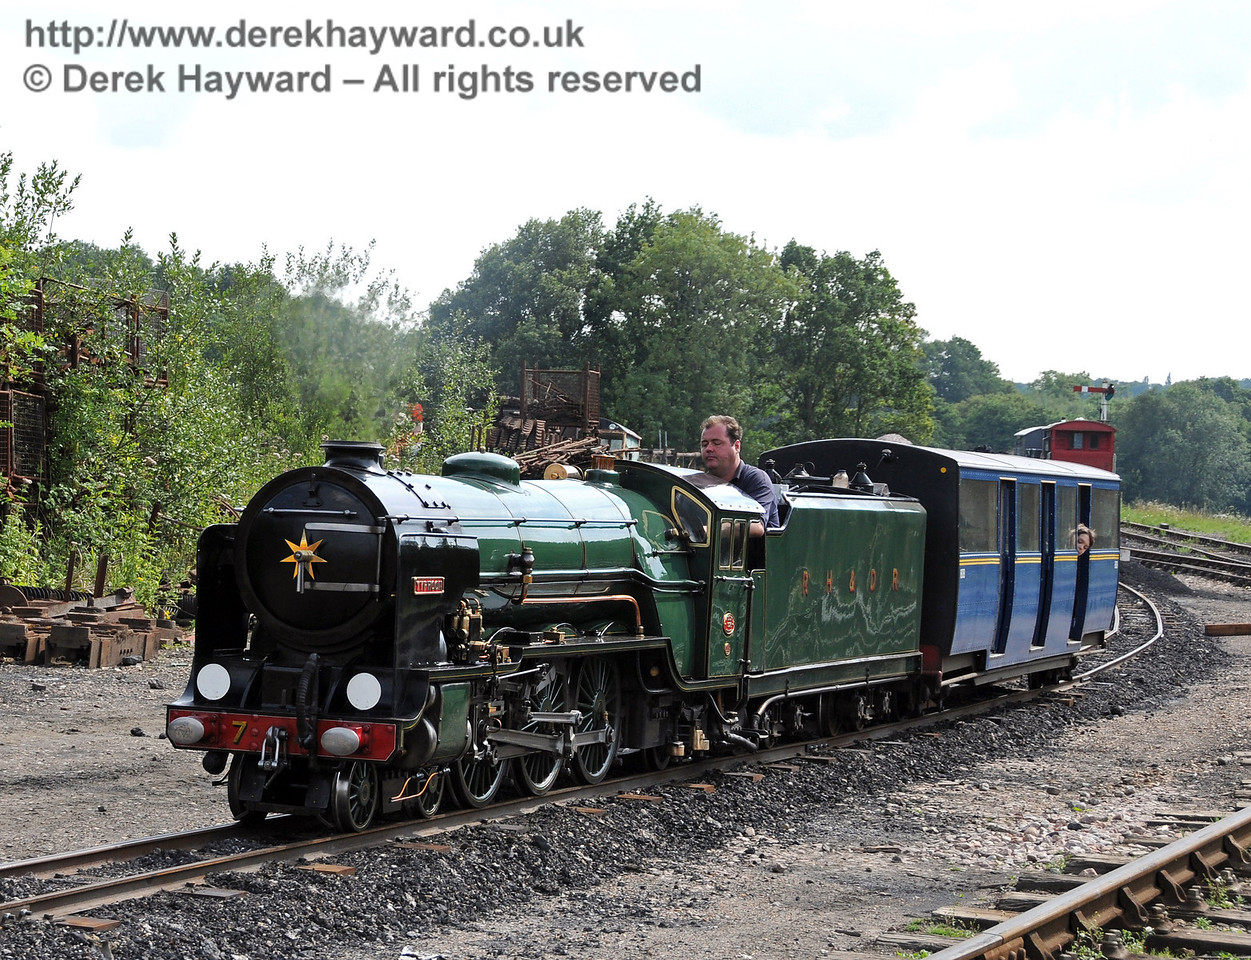 Typhoon (Number 7) from the Romney Hythe and Dymchurch Railway giving rides in Horsted Keynes Down Yard. 08.08.2010  3859